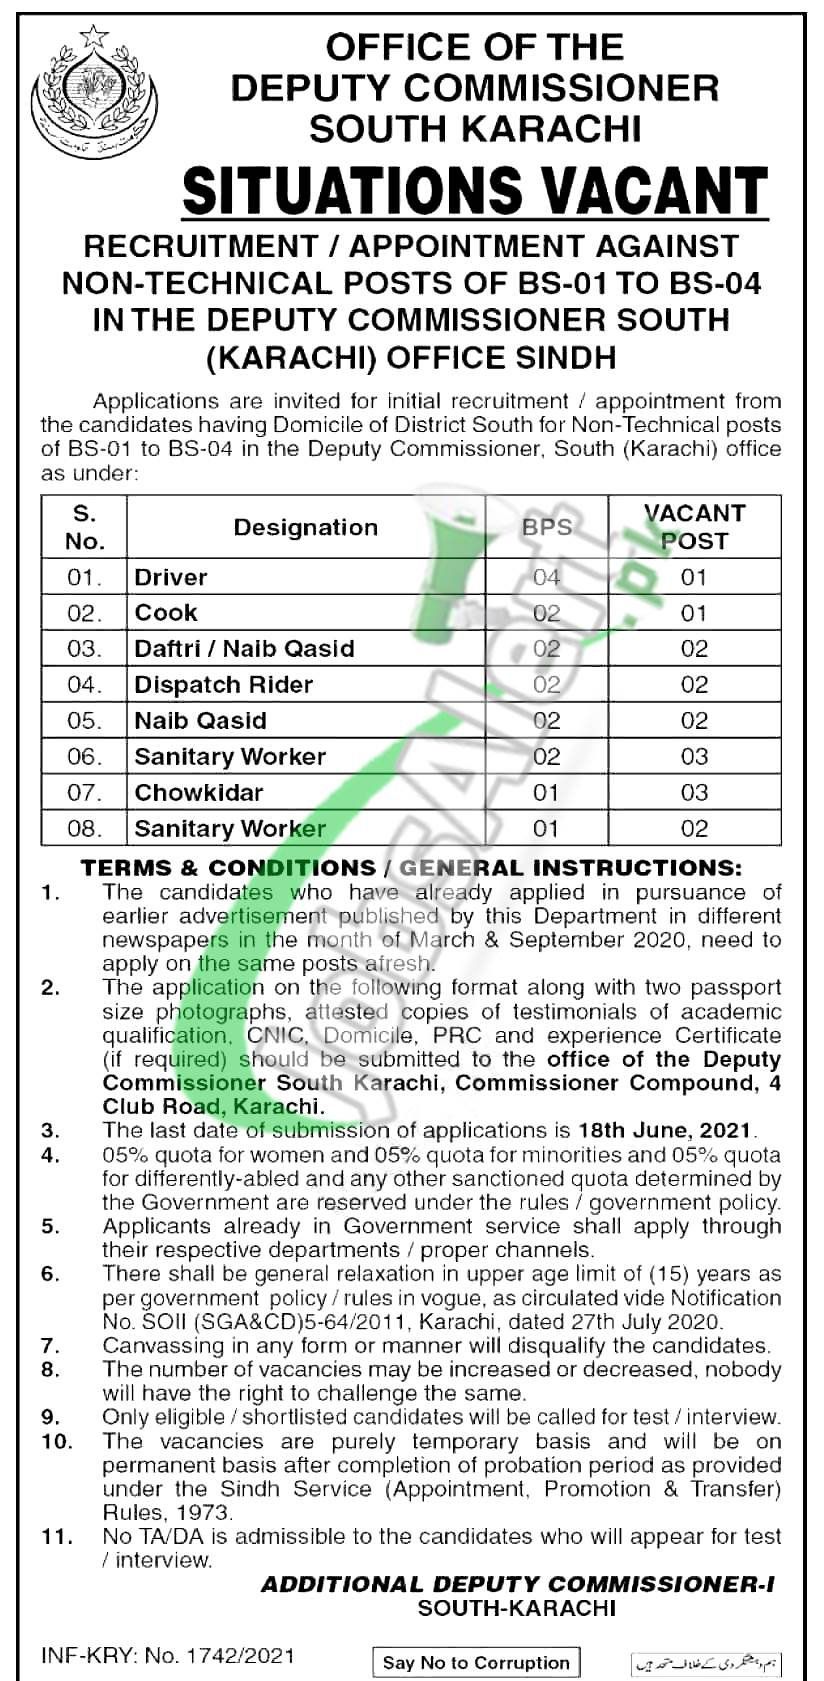 Deputy Commissioner Office South Karachi Latest Jobs 2021 For BPS-01 to BPS-04